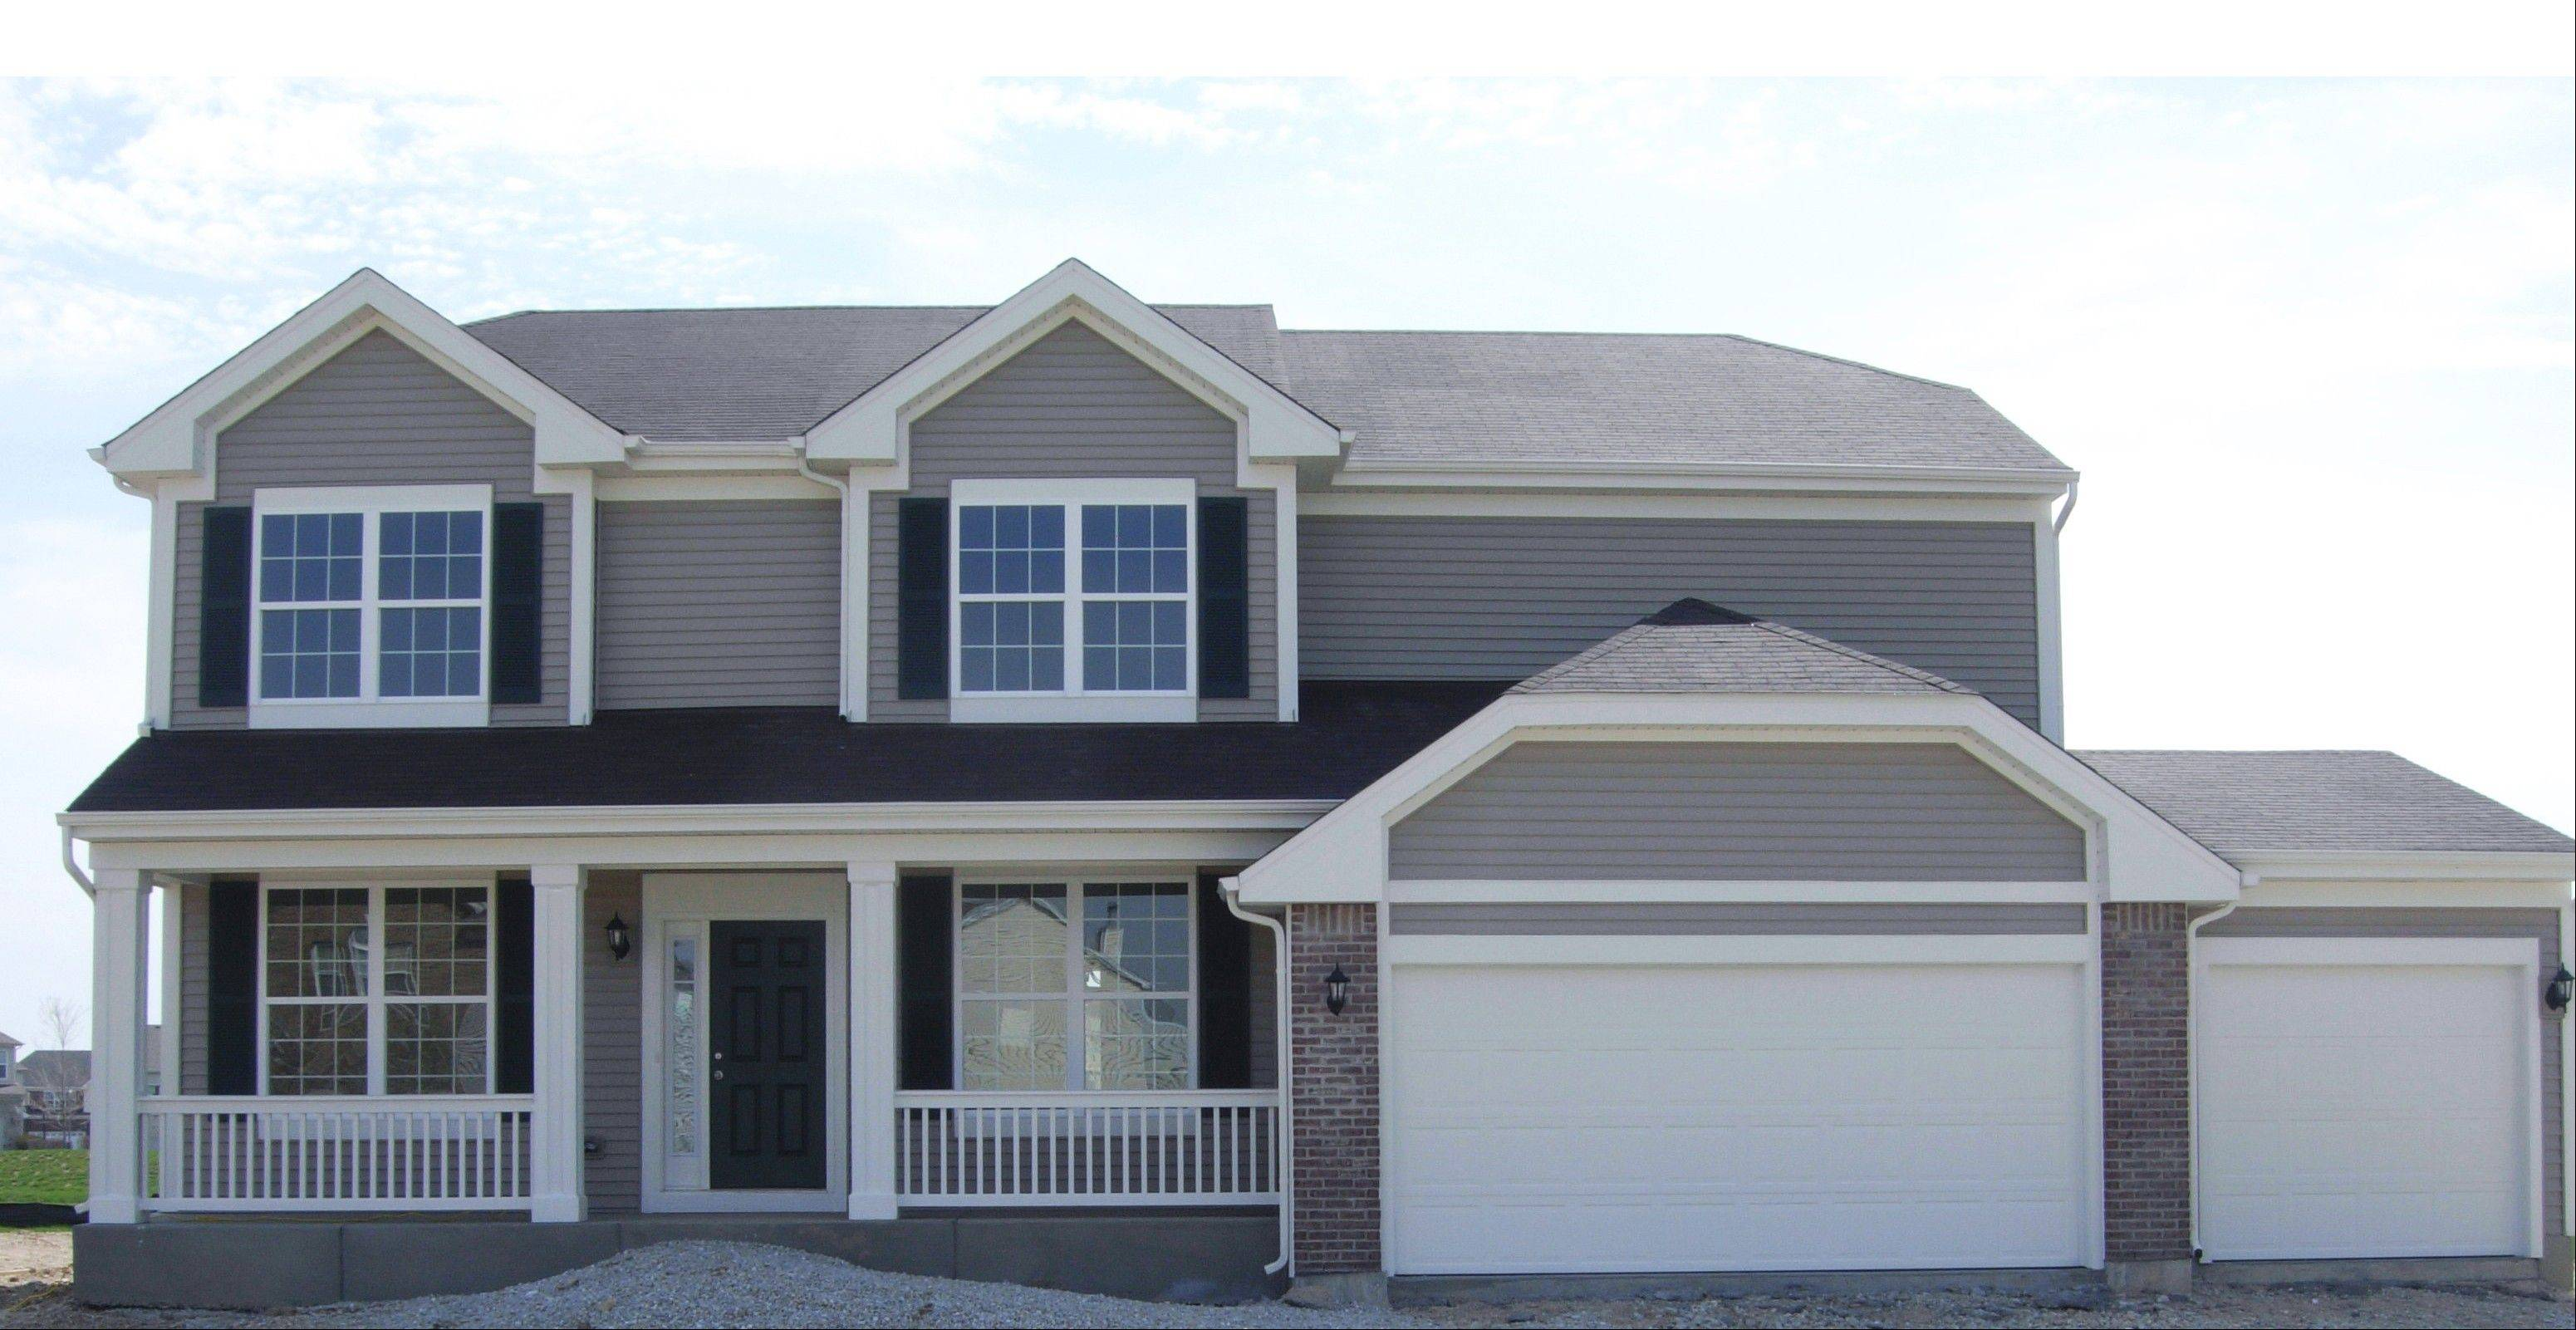 This Tuscan model is now ready for purchase at Cambridge at Southbury, a new home community in Oswego.